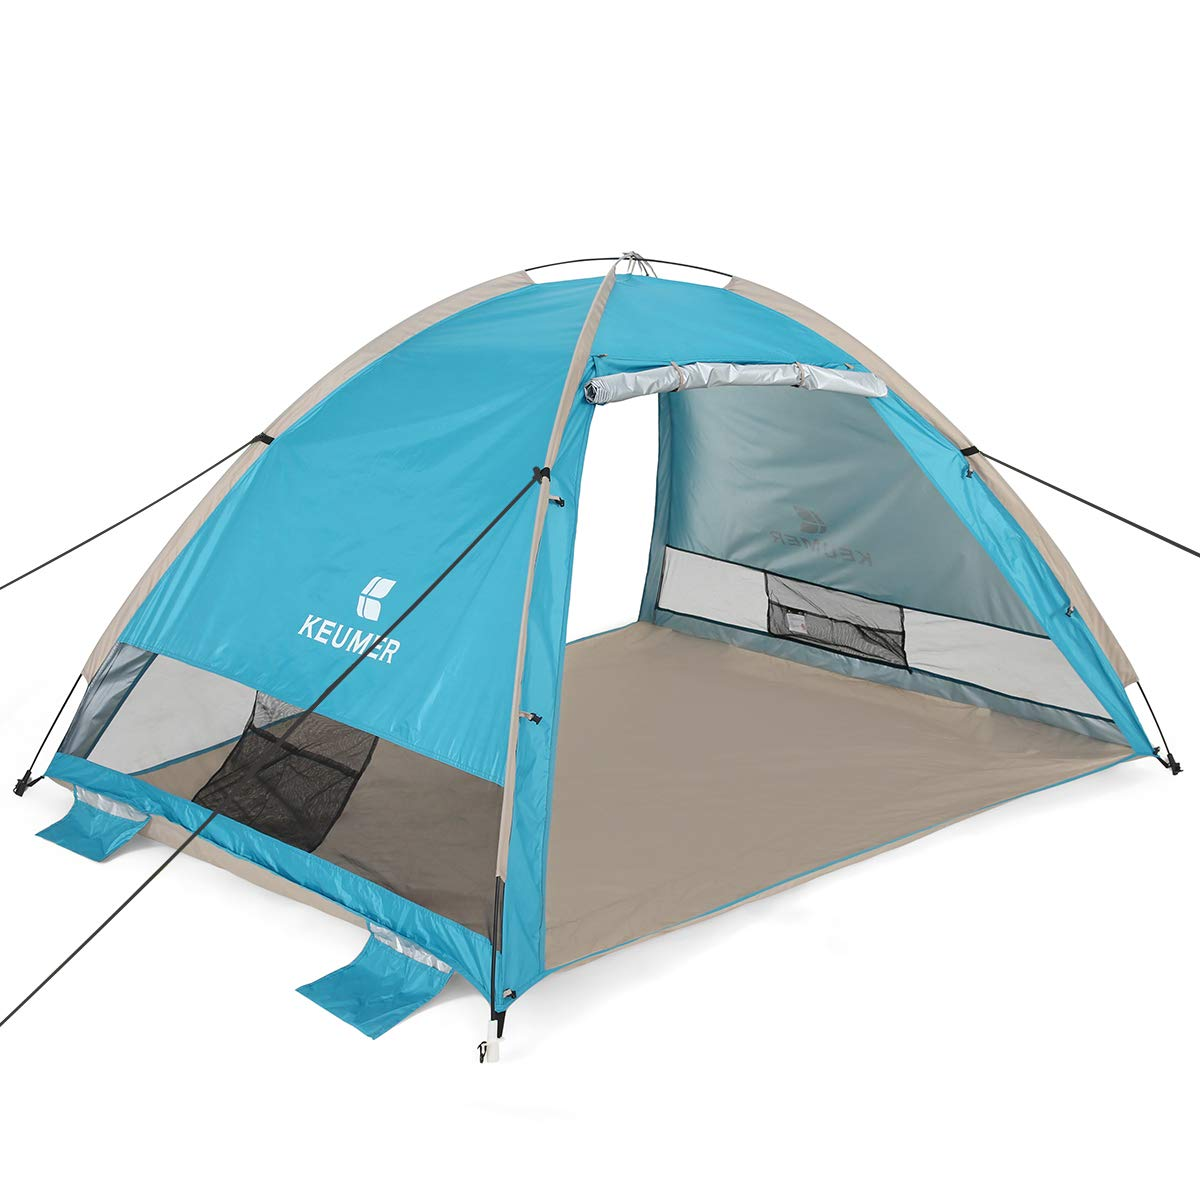 G4Free Large Beach Tent Camping Sun Shelter Portable Automatic Cabana Anti UV Shade by G4Free